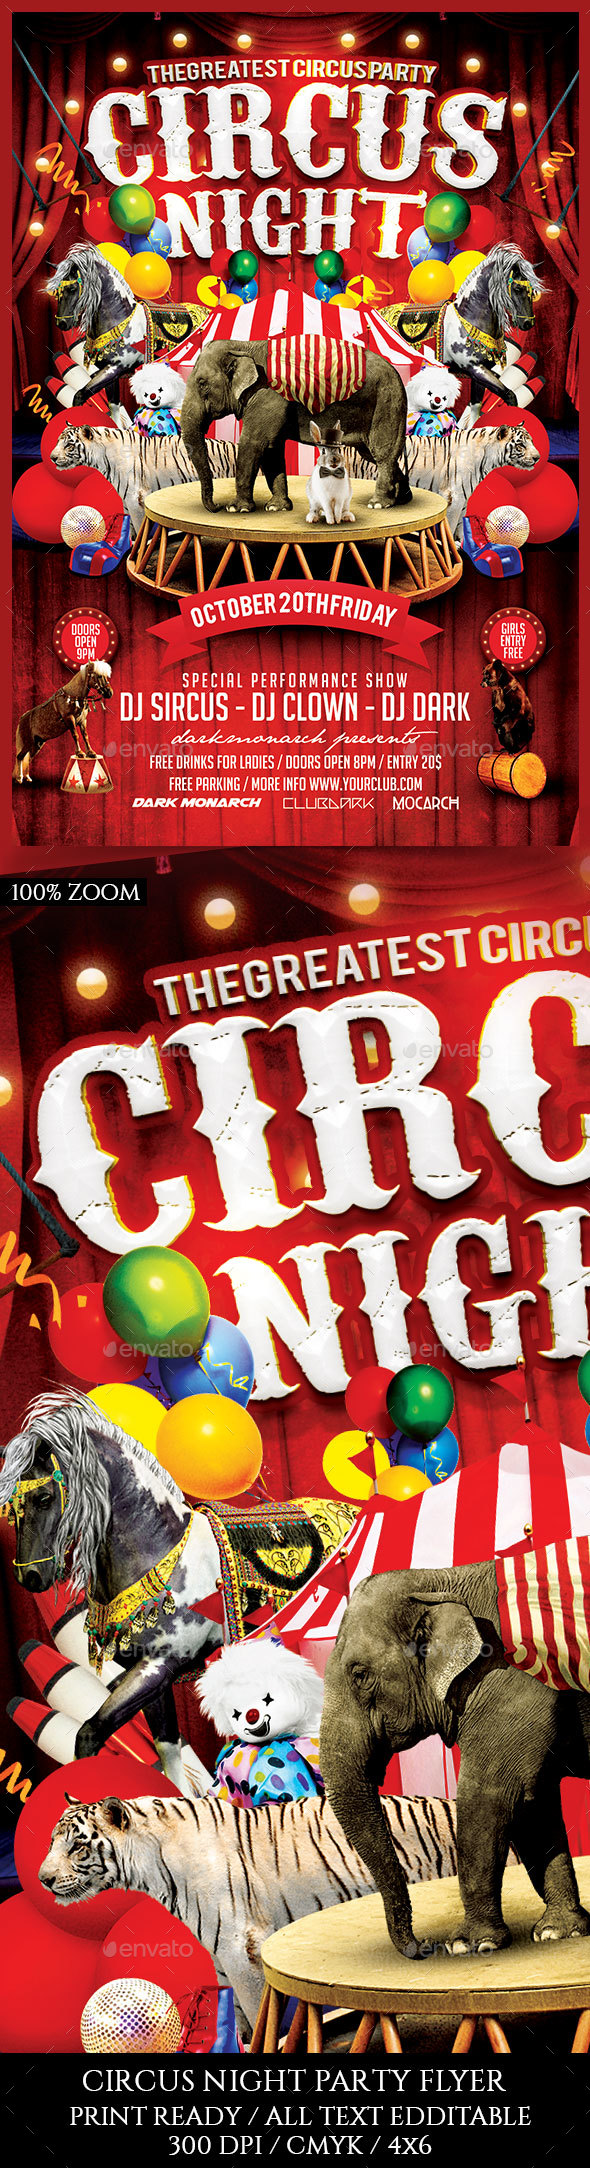 Circus Night Flyer - Clubs & Parties Events